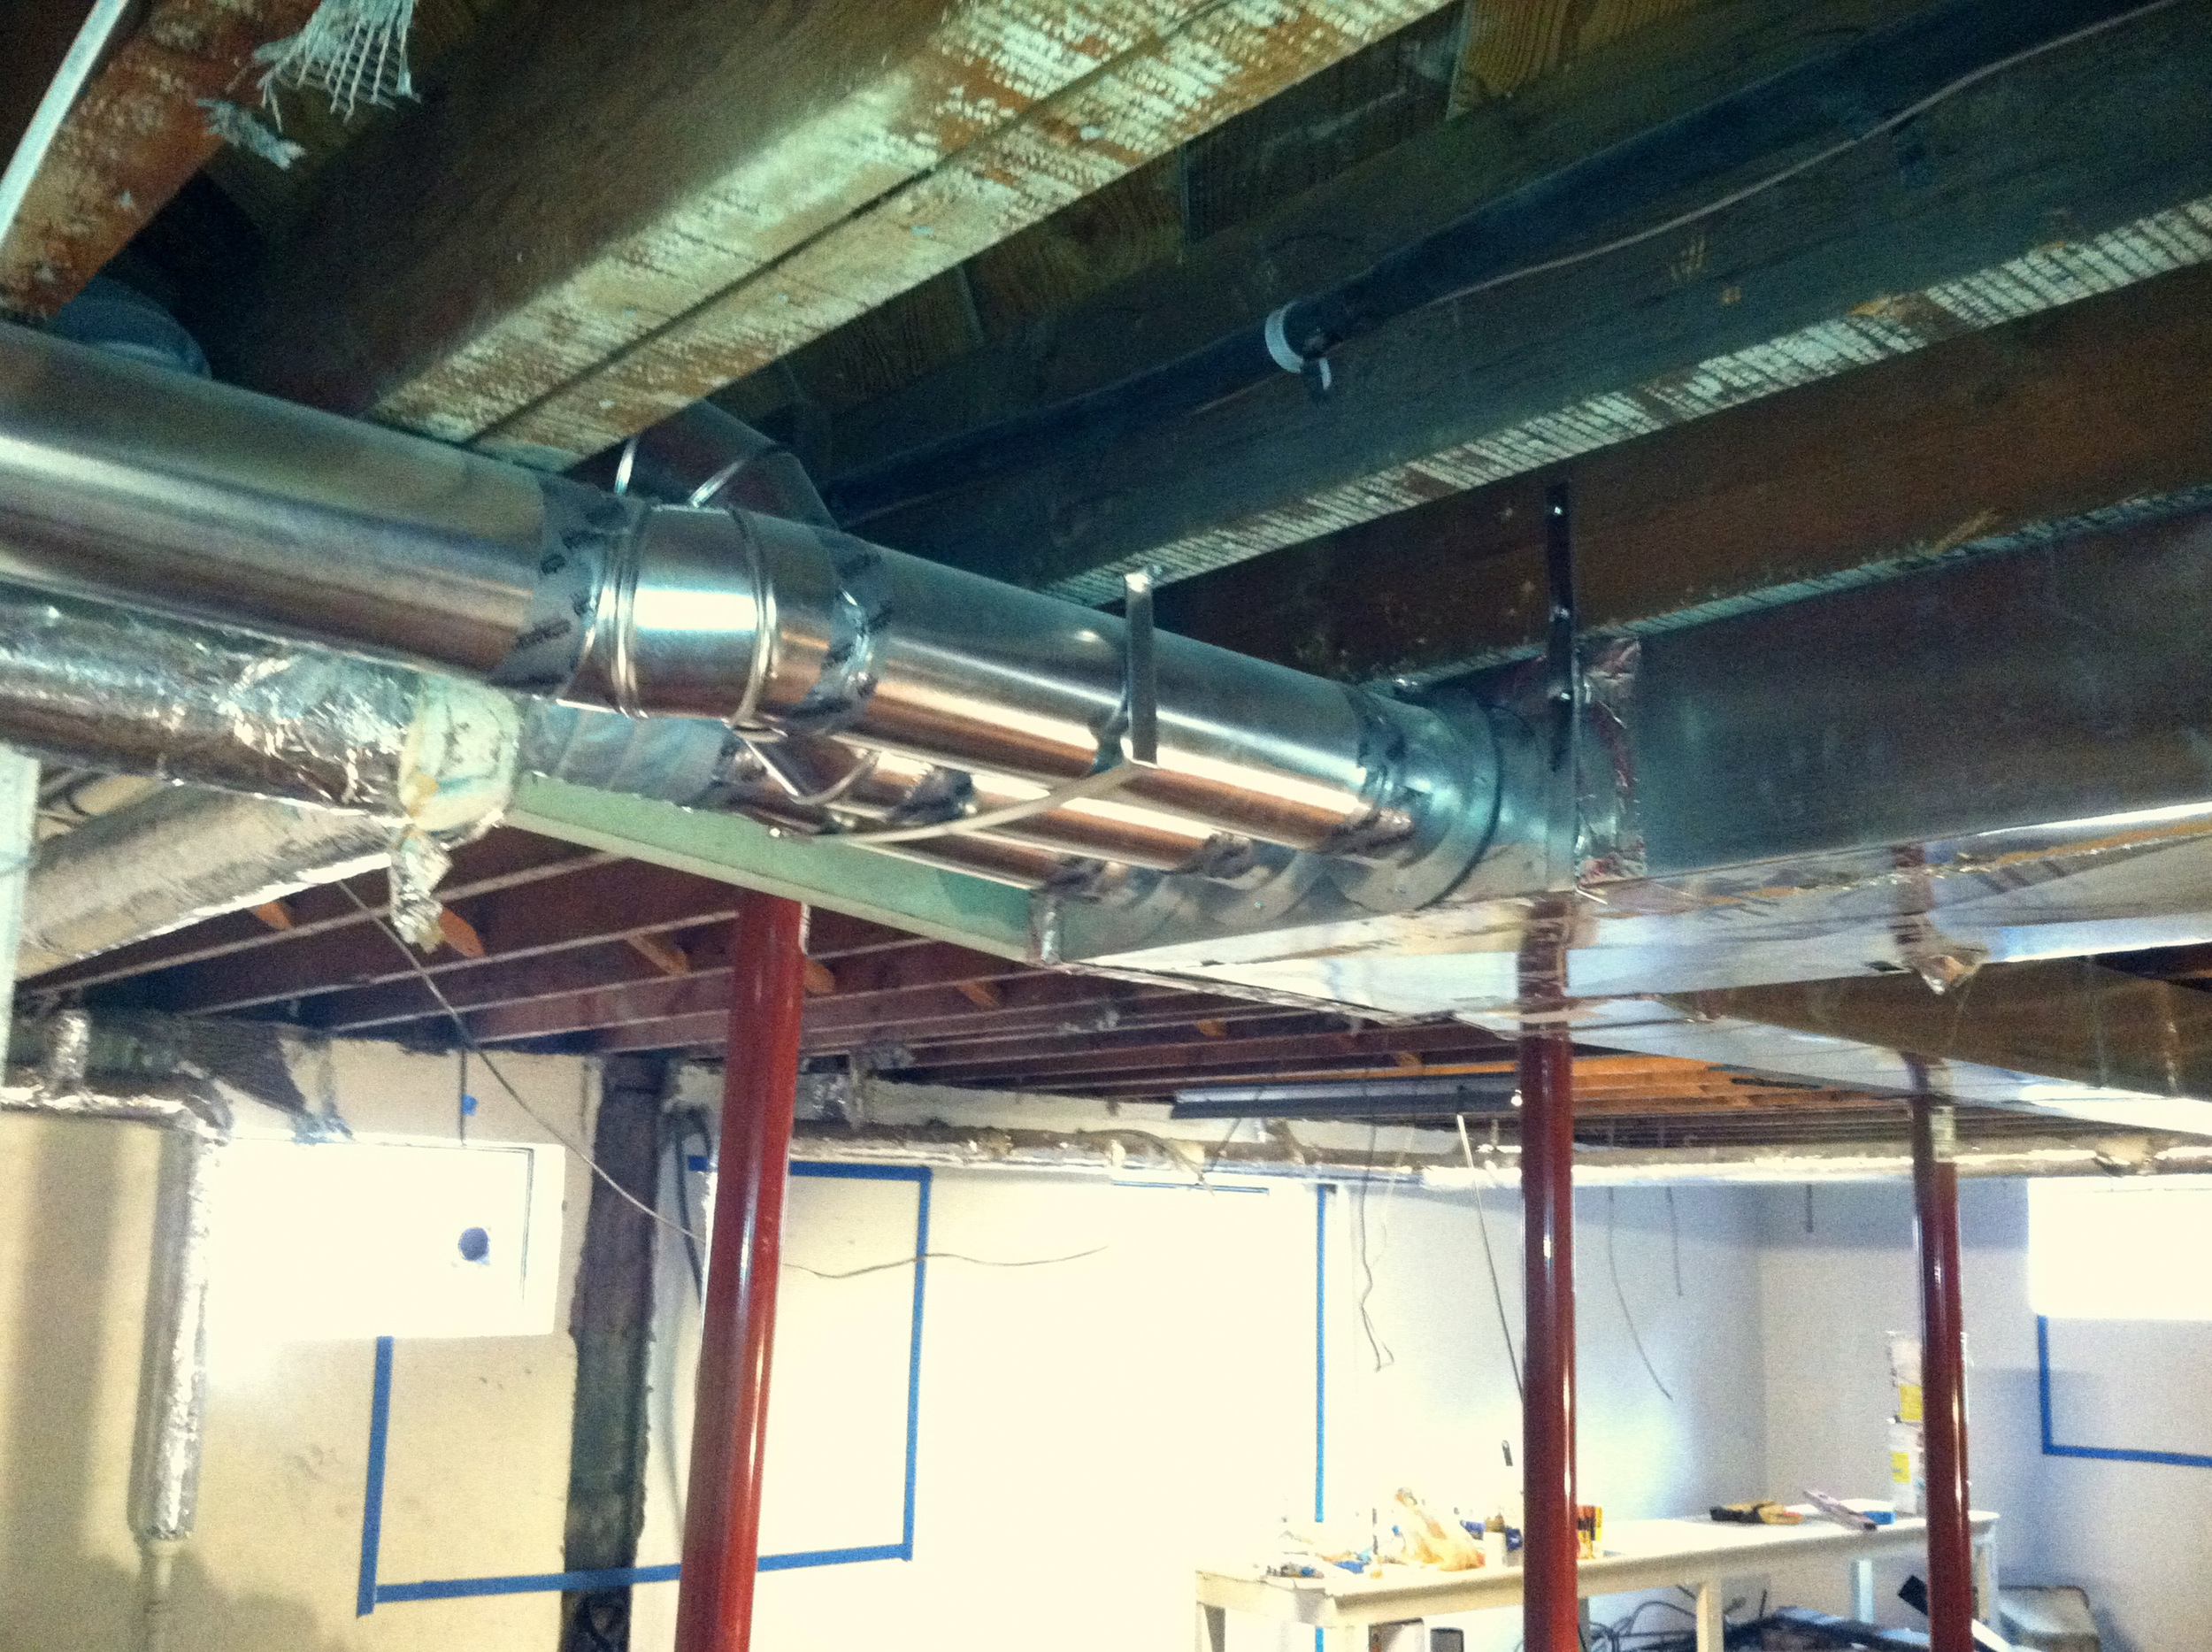 New Duct Work